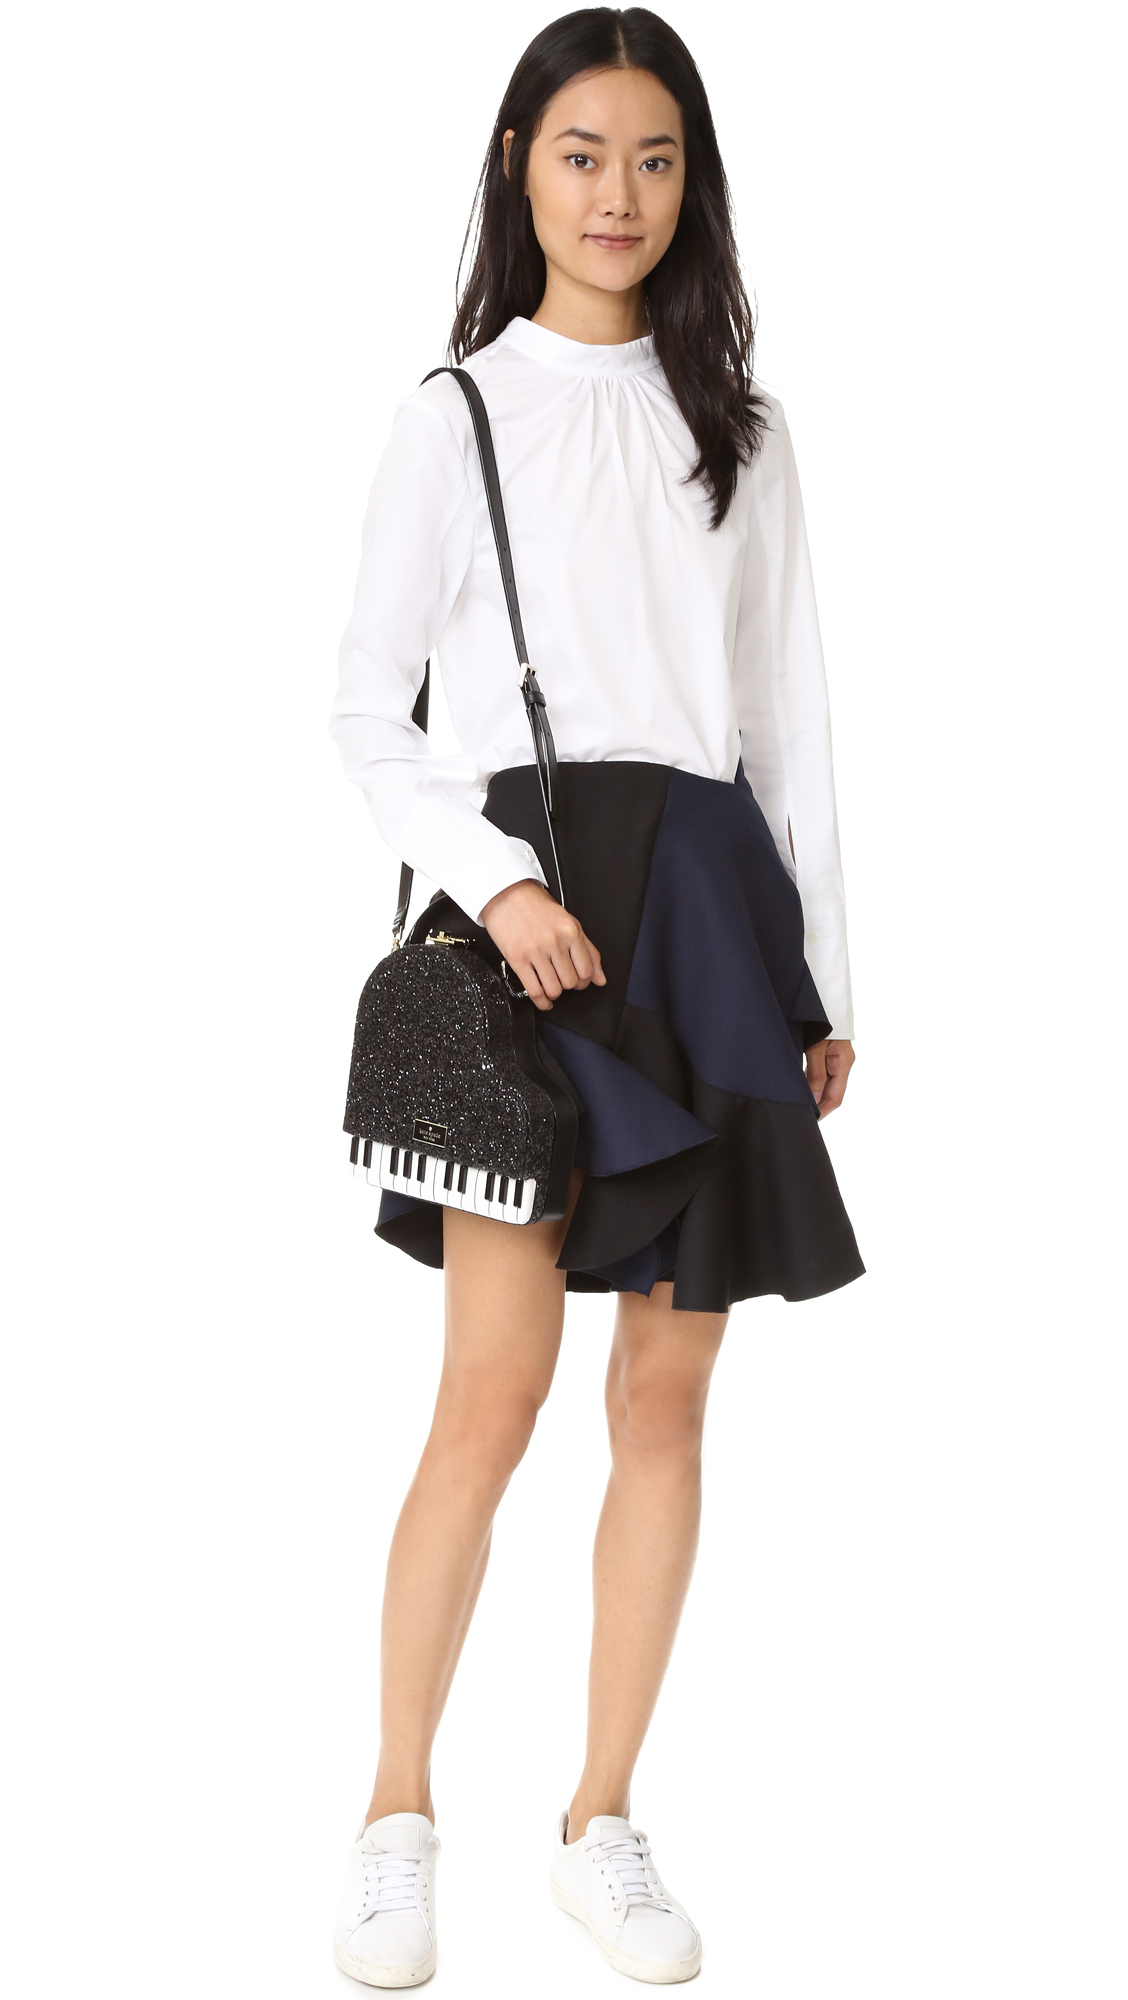 d270589b572e Kate Spade New York Piano Bag